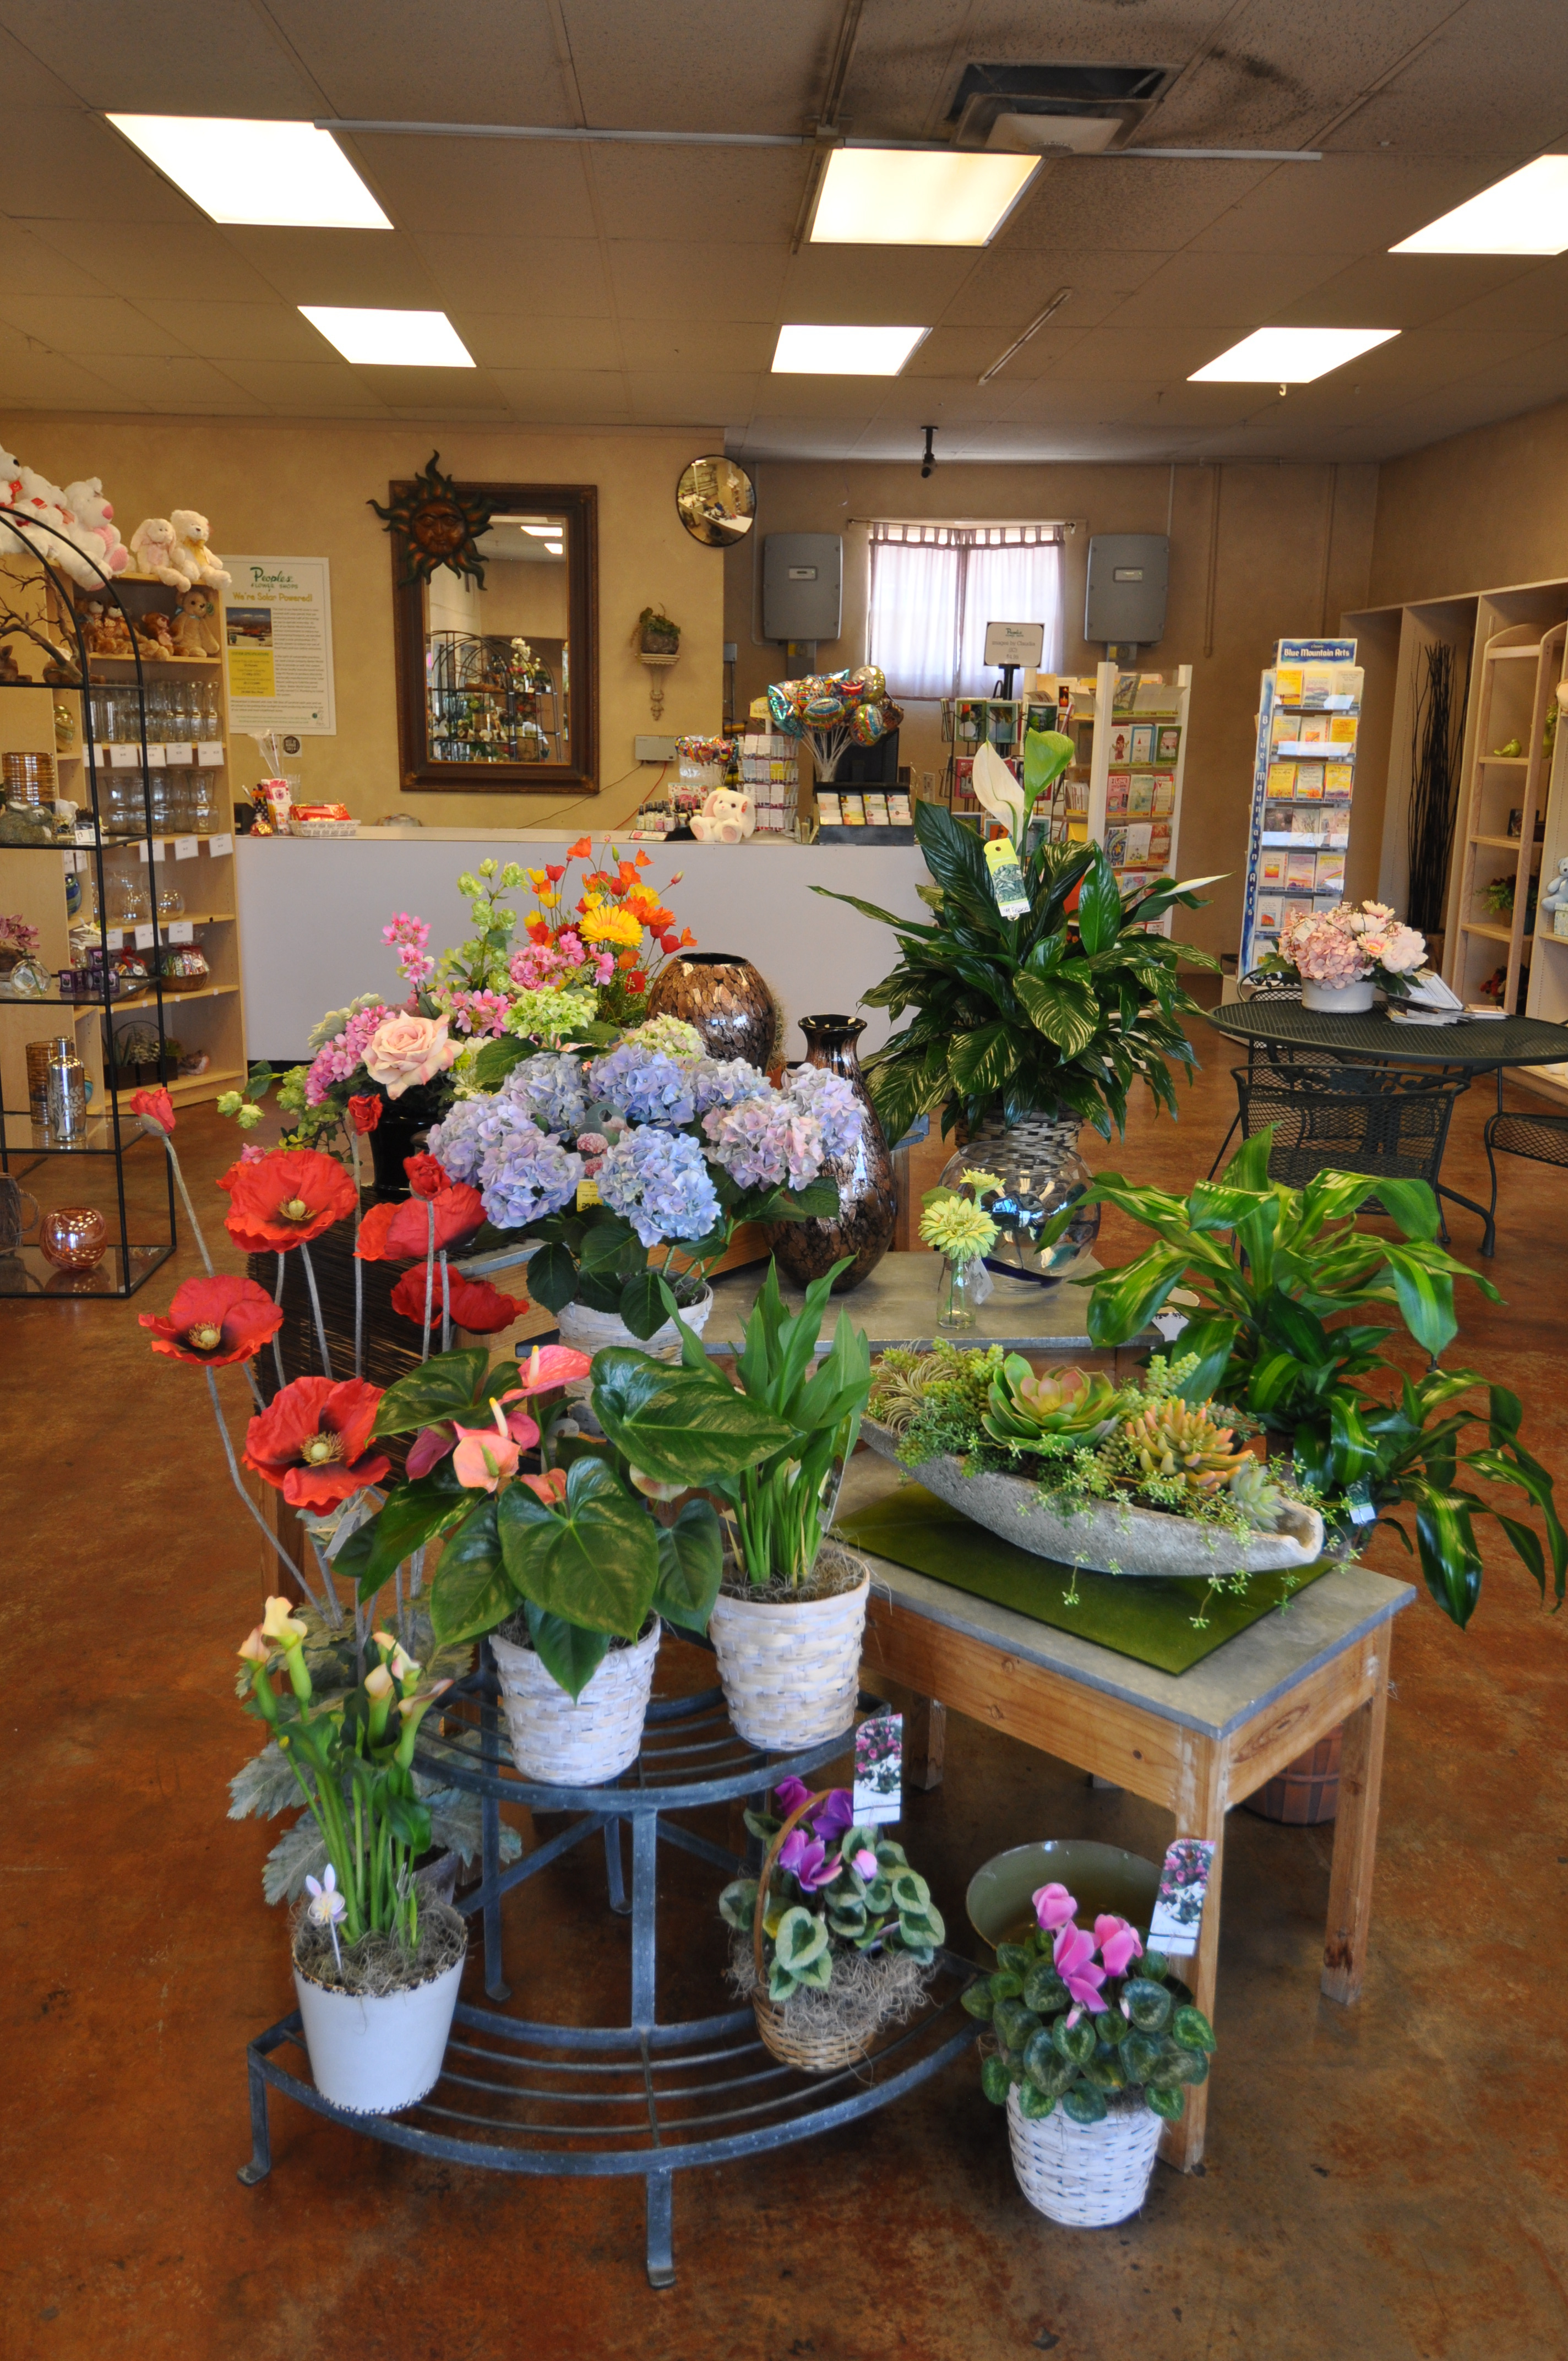 Peoples Flower Shops Nob Hill Location Coupons near me in Albuquerque